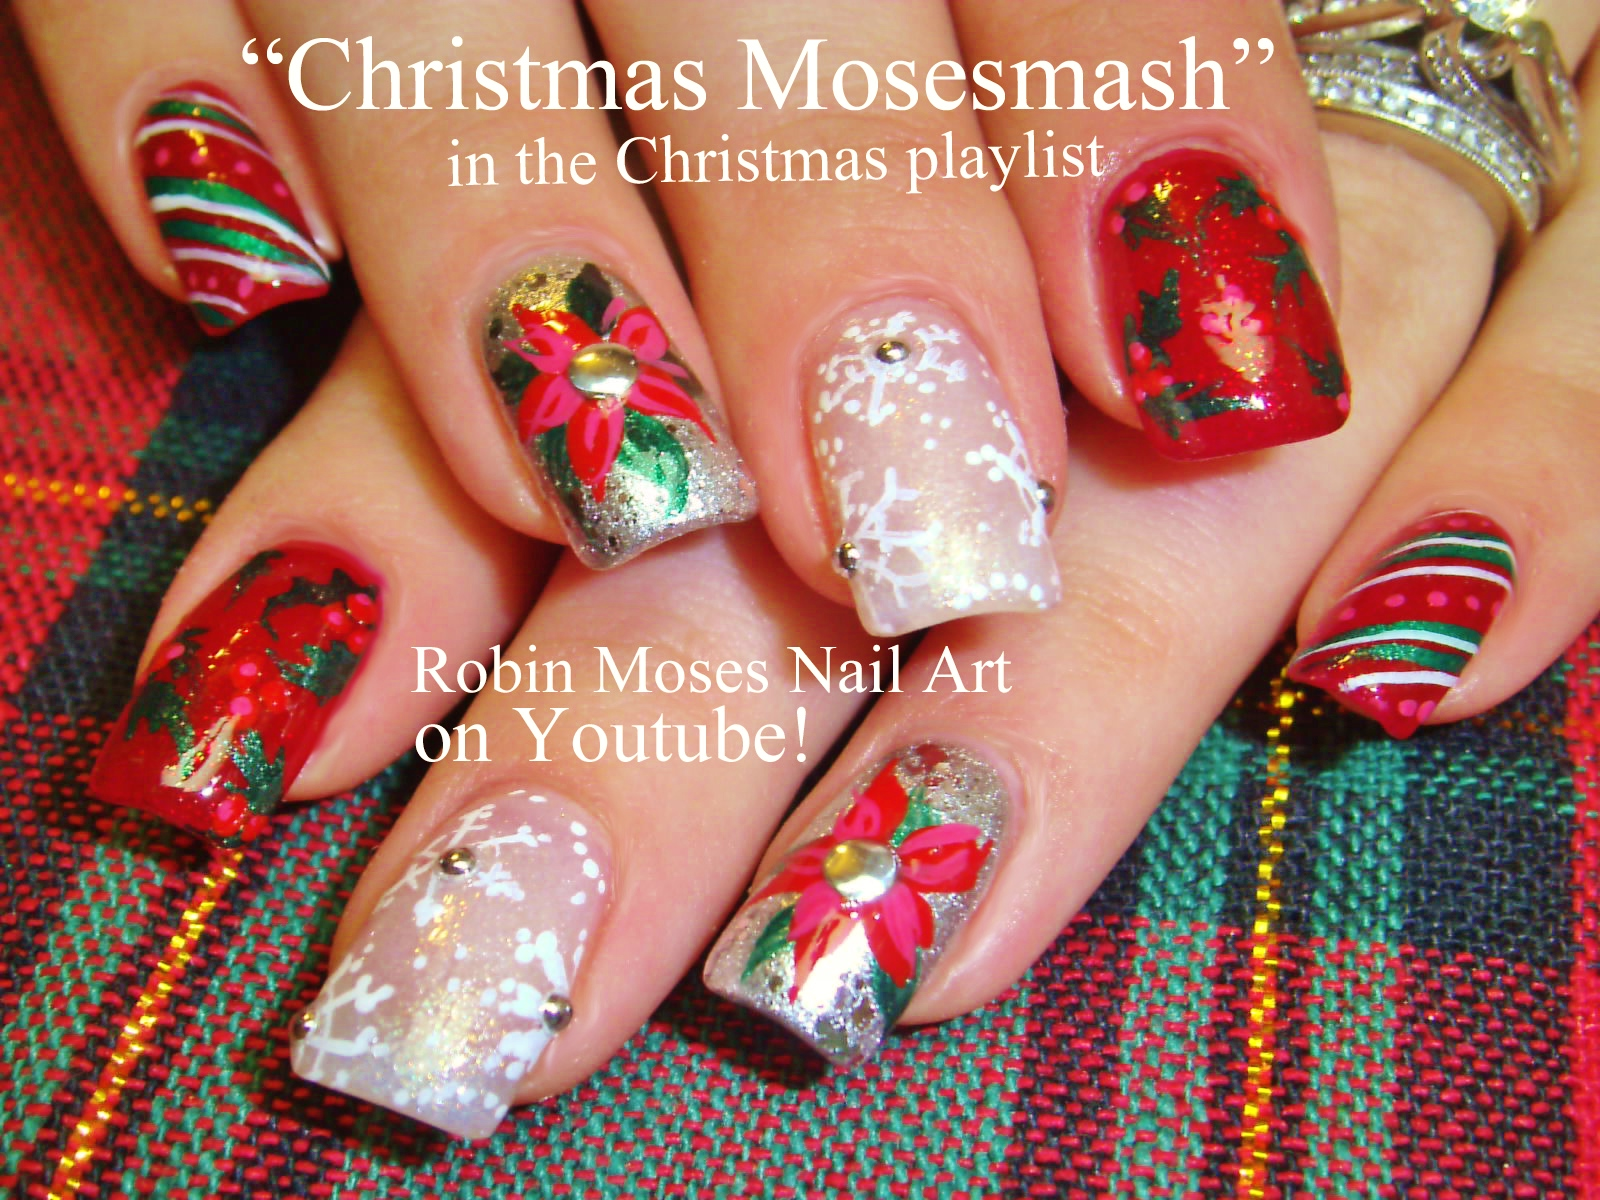 Robin moses nail art christmas poinsetta nail art xmas flower poinsettia nail art design tutorials from my youtube page over 75 christmas nail designs to choose from please spread the word and join meon youtube prinsesfo Image collections